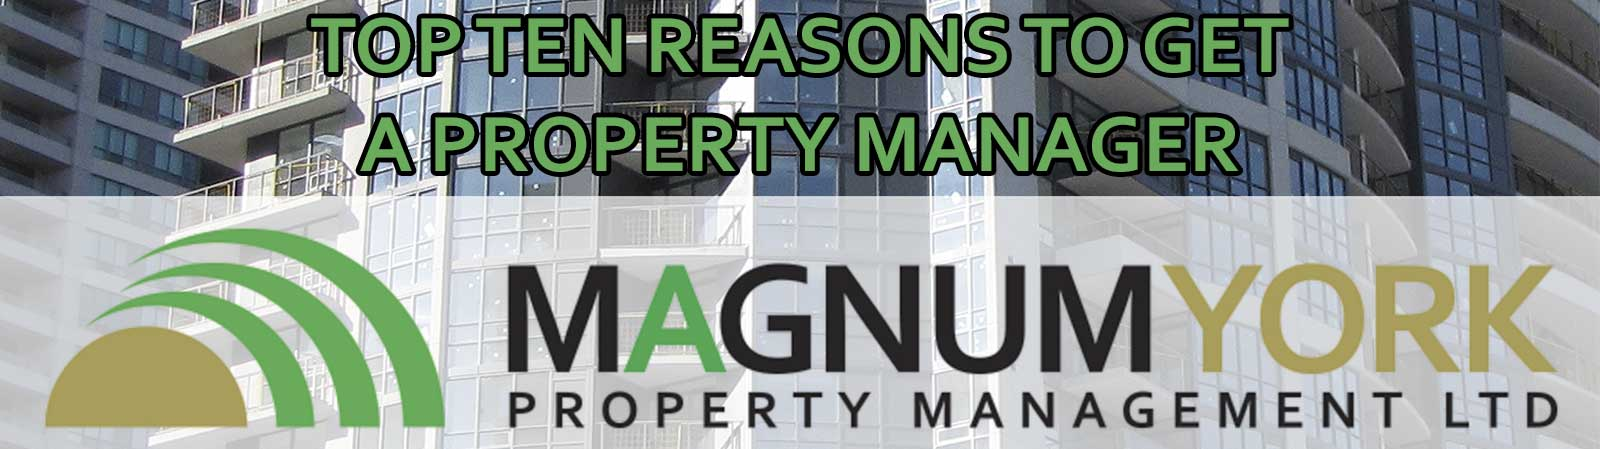 Top Ten Reasons to get a Rental Property Manager-4842